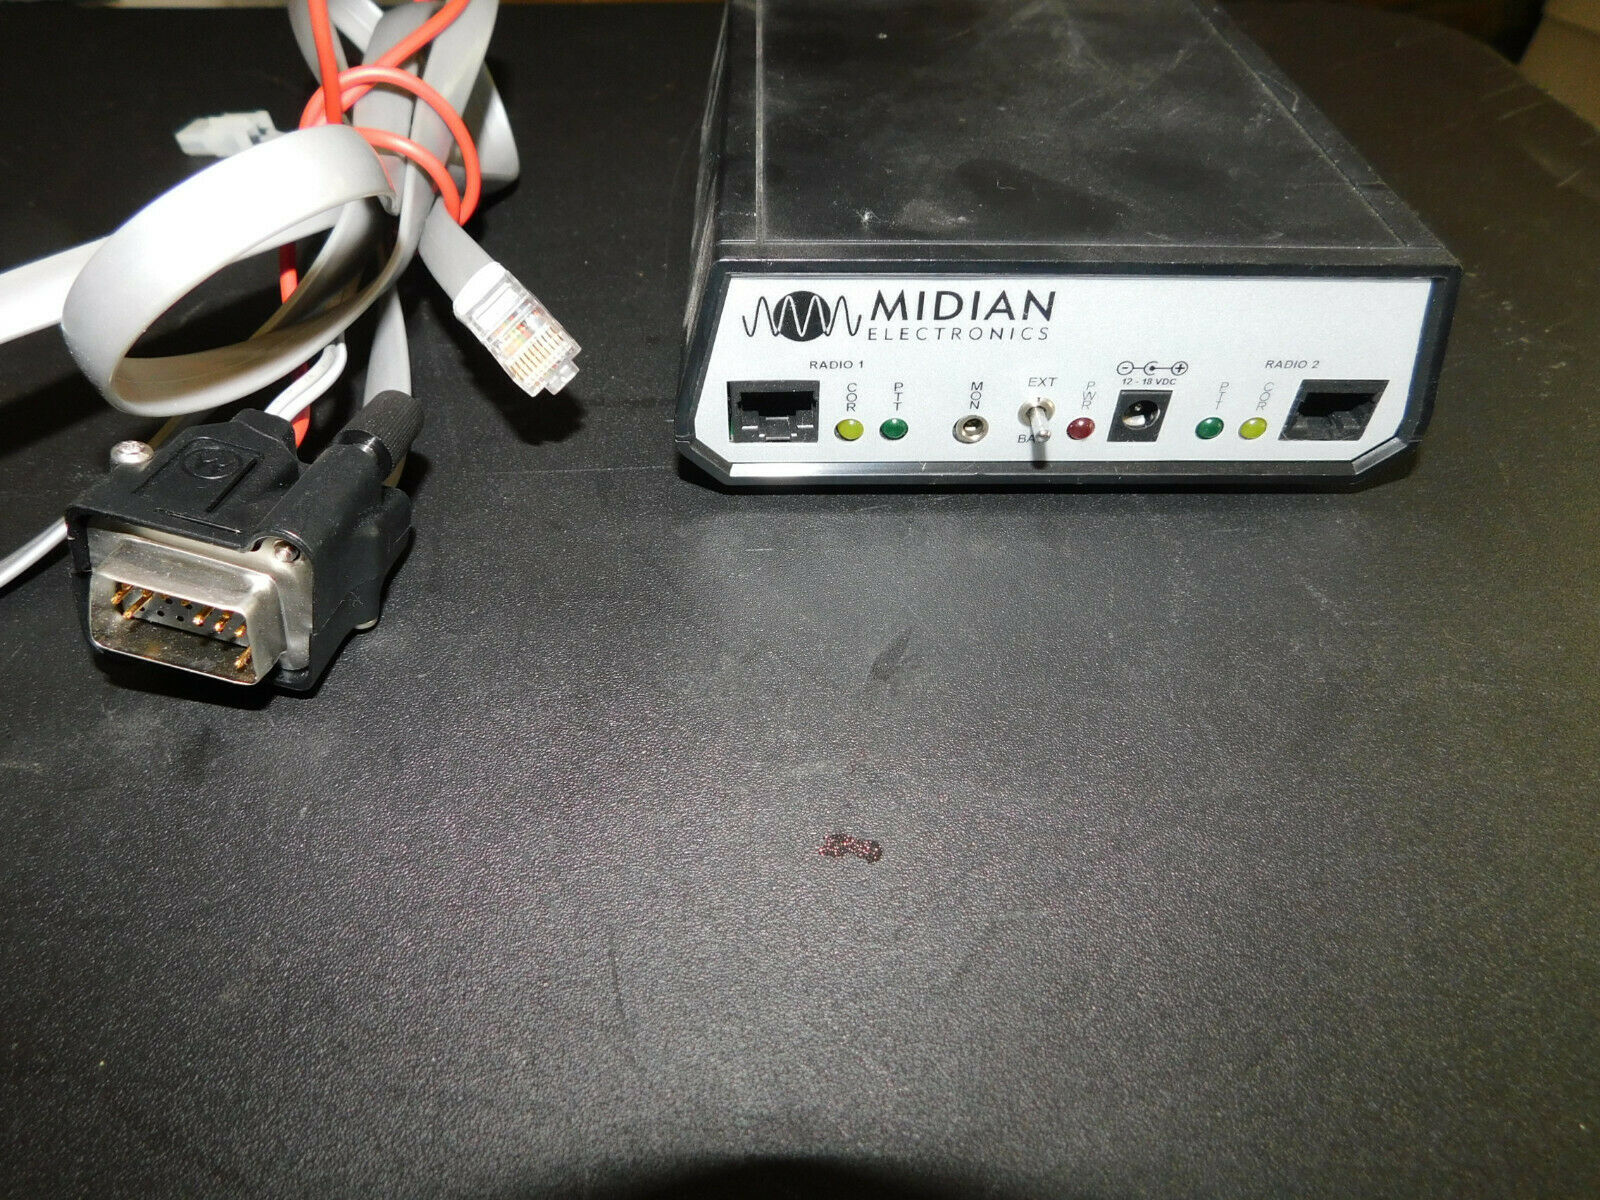 Midian IS-1 Interoperability gateway and repeater maker XTL5000 XTL2500 VHF UHF. Available Now for 300.00